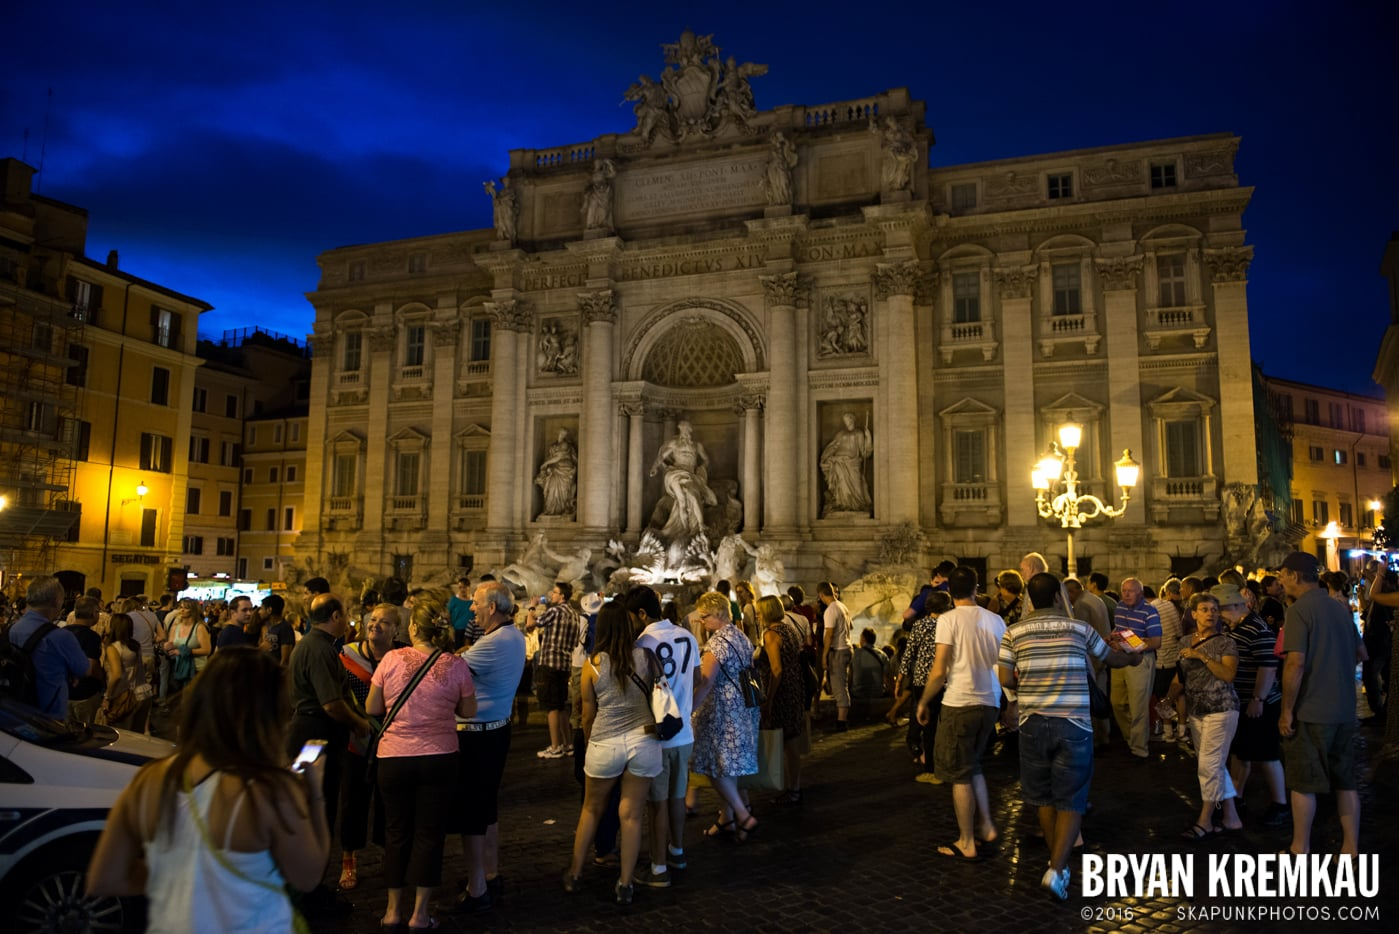 Italy Vacation - Day 1: Rome - 9.9.13 (25)